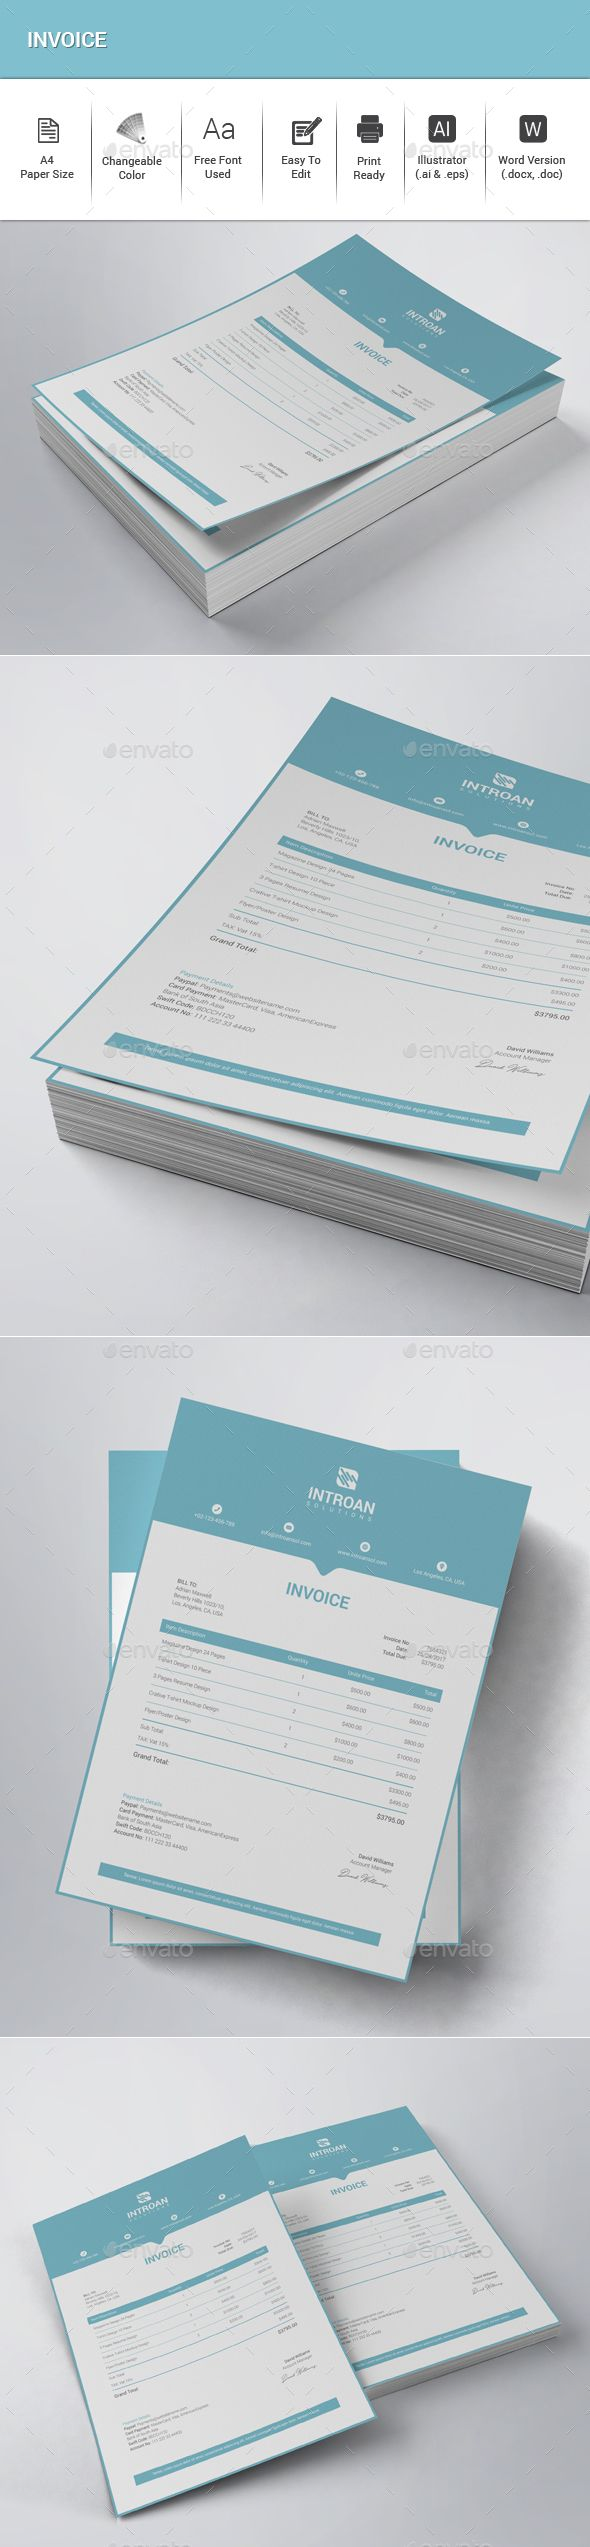 Invoice — Vector EPS #print invoice #stationary • Available here → https://graphicriver.net/item/invoice/20739534?ref=pxcr